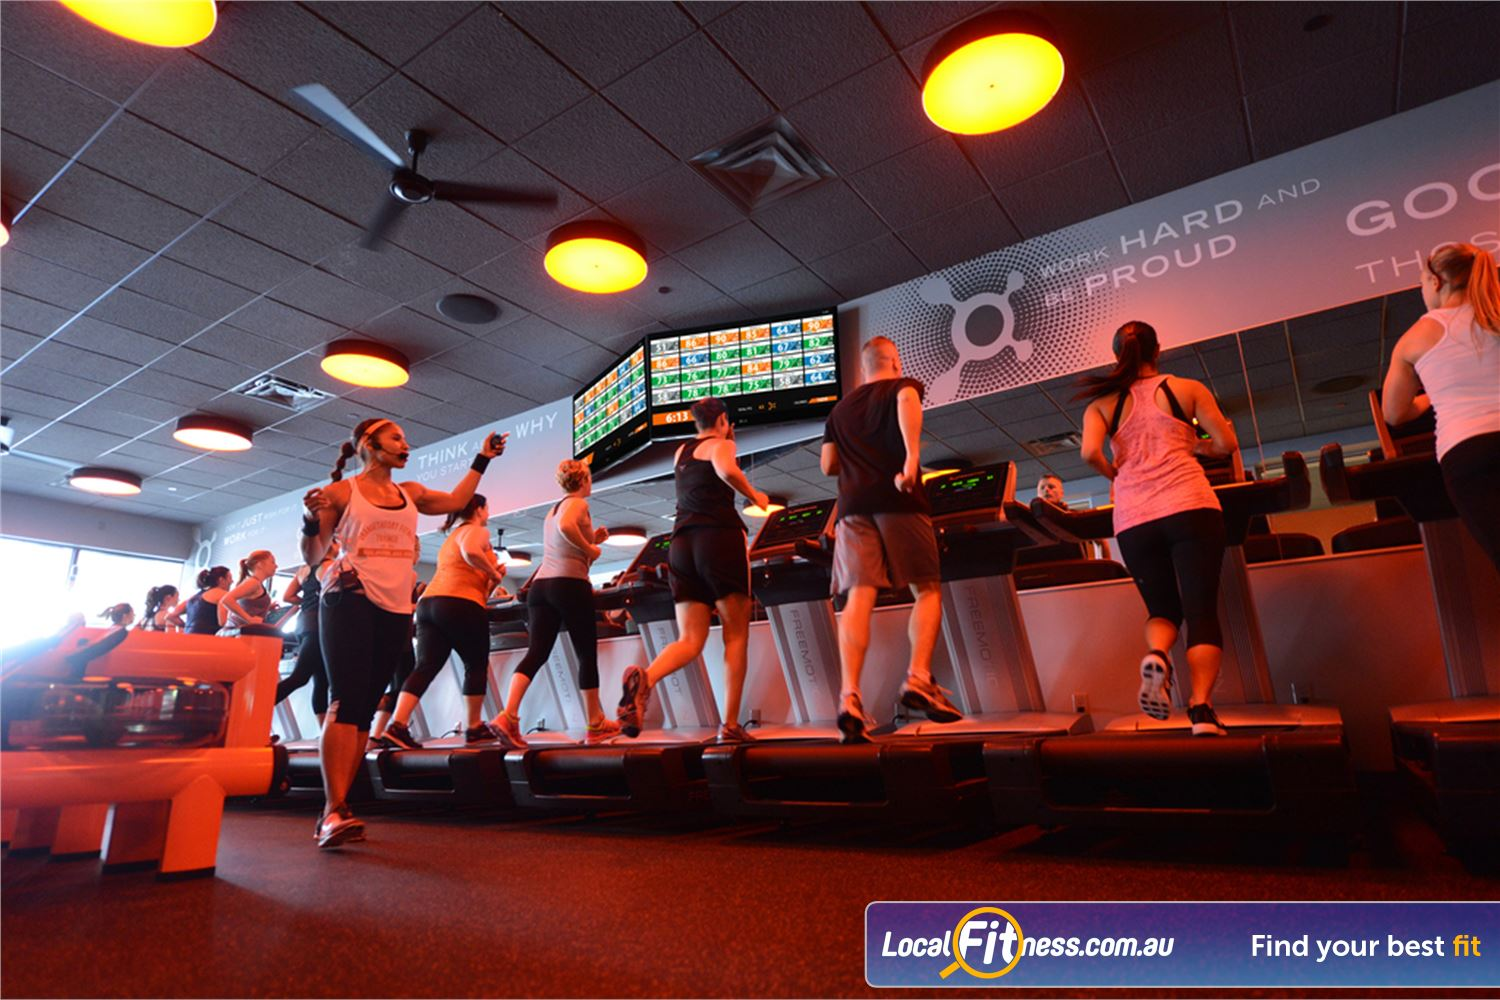 Orangetheory Fitness Hawthorn Our Hawthorn gym includes 12 state-of the-art treadmills.